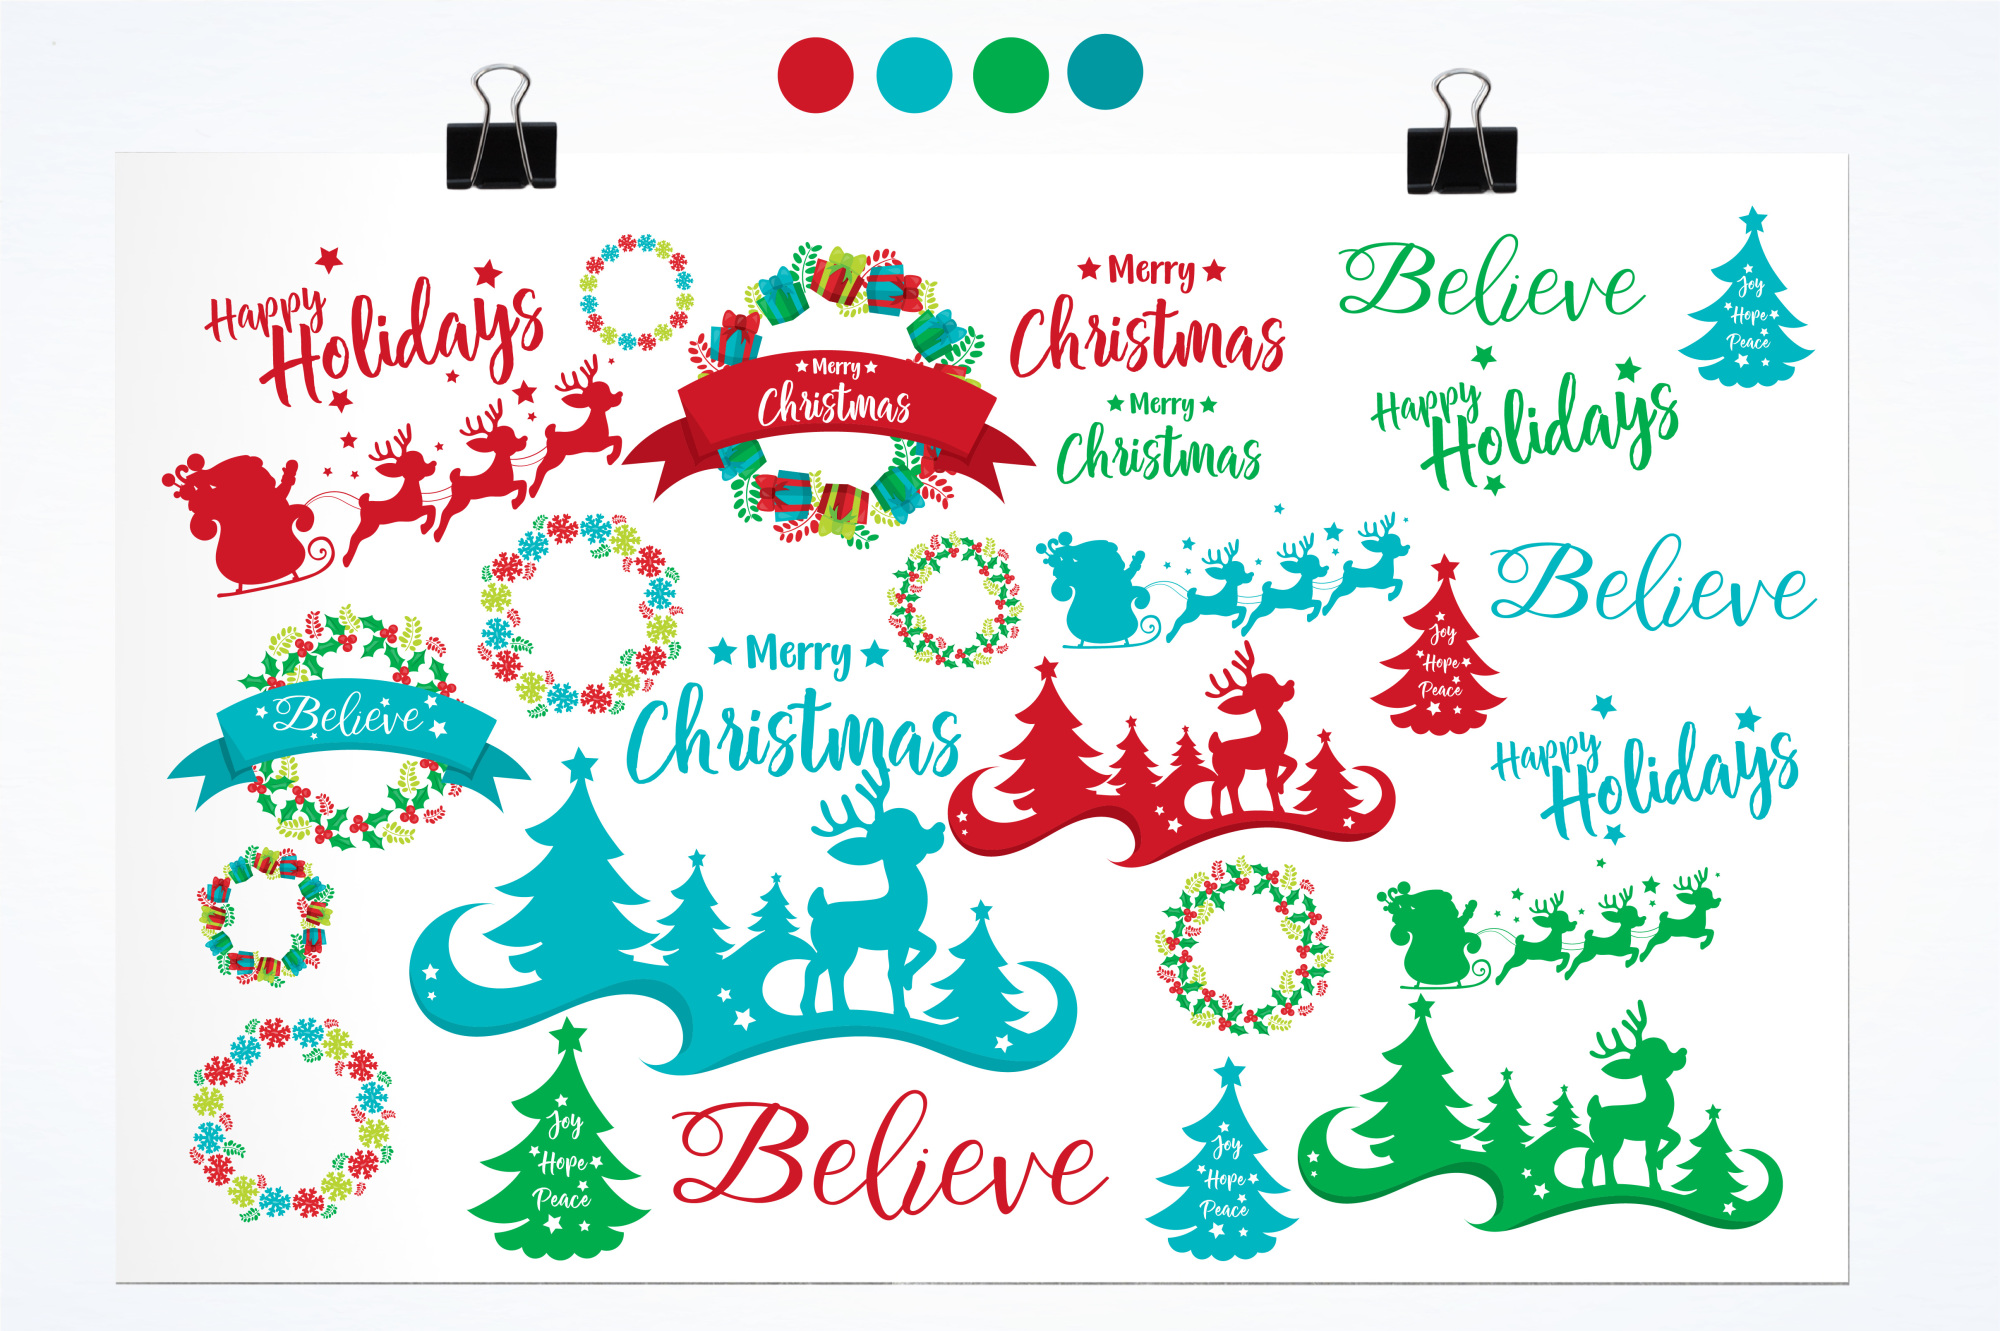 Happy Holidays  graphics and illustrations example image 2